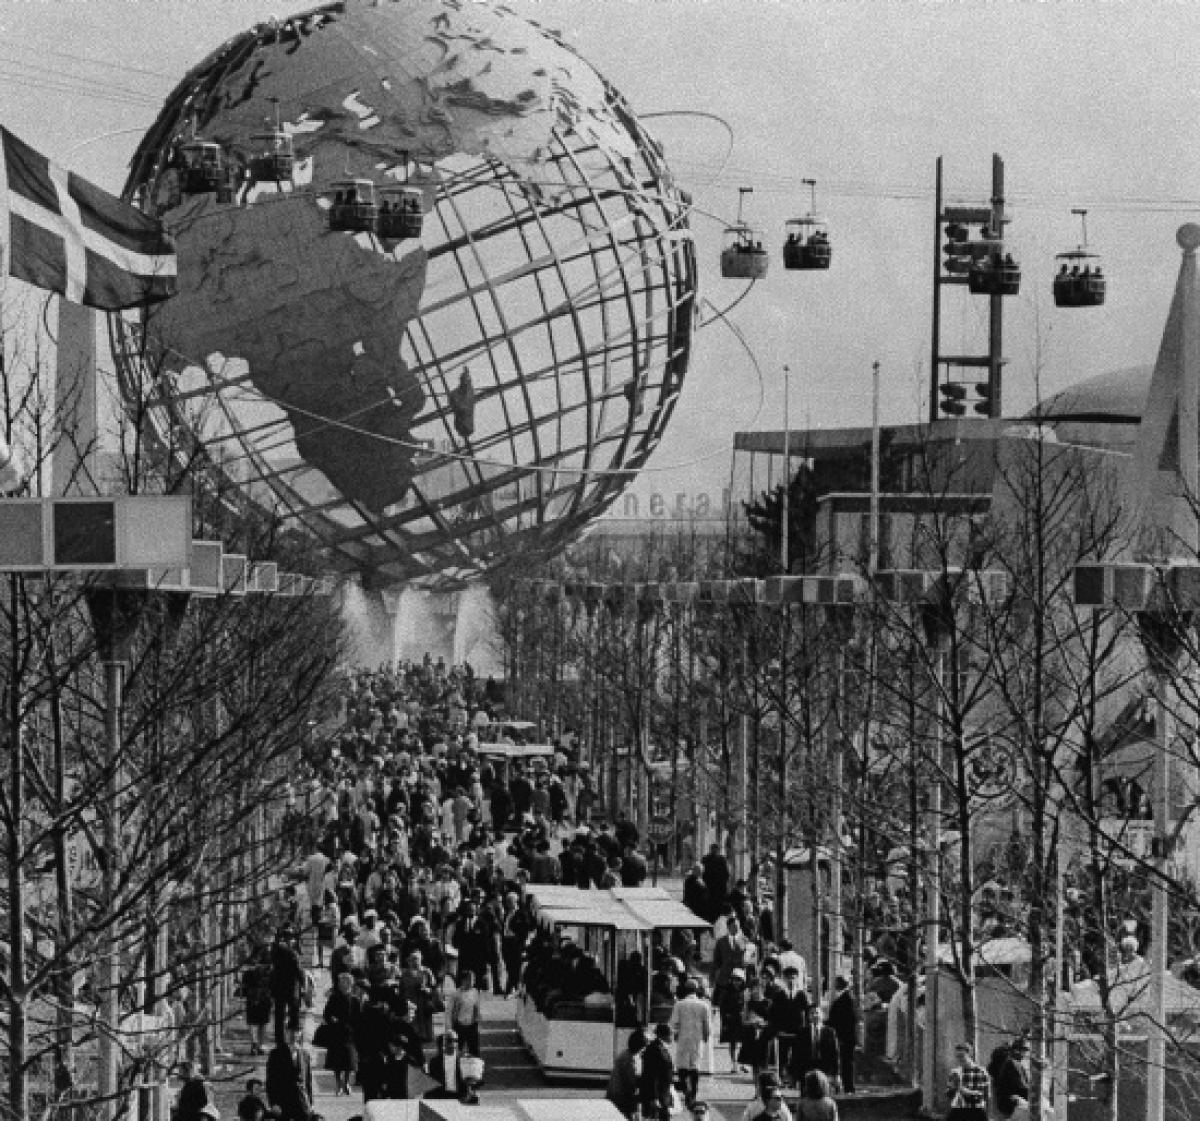 The Unisphere as seen during the 1964-1965 New York World's Fair.